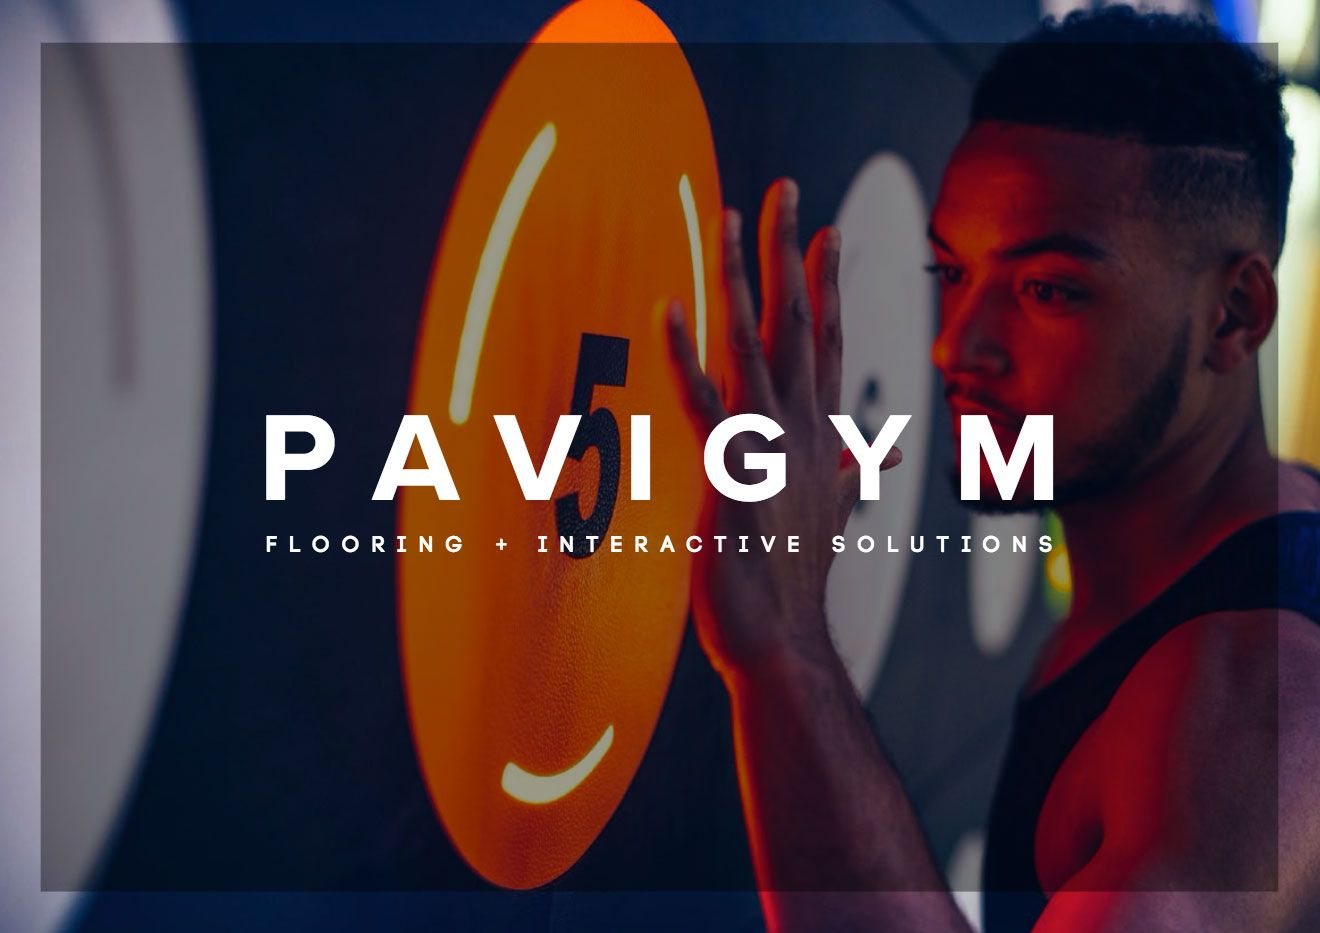 Pavigym Flooring + Interactive Solutions